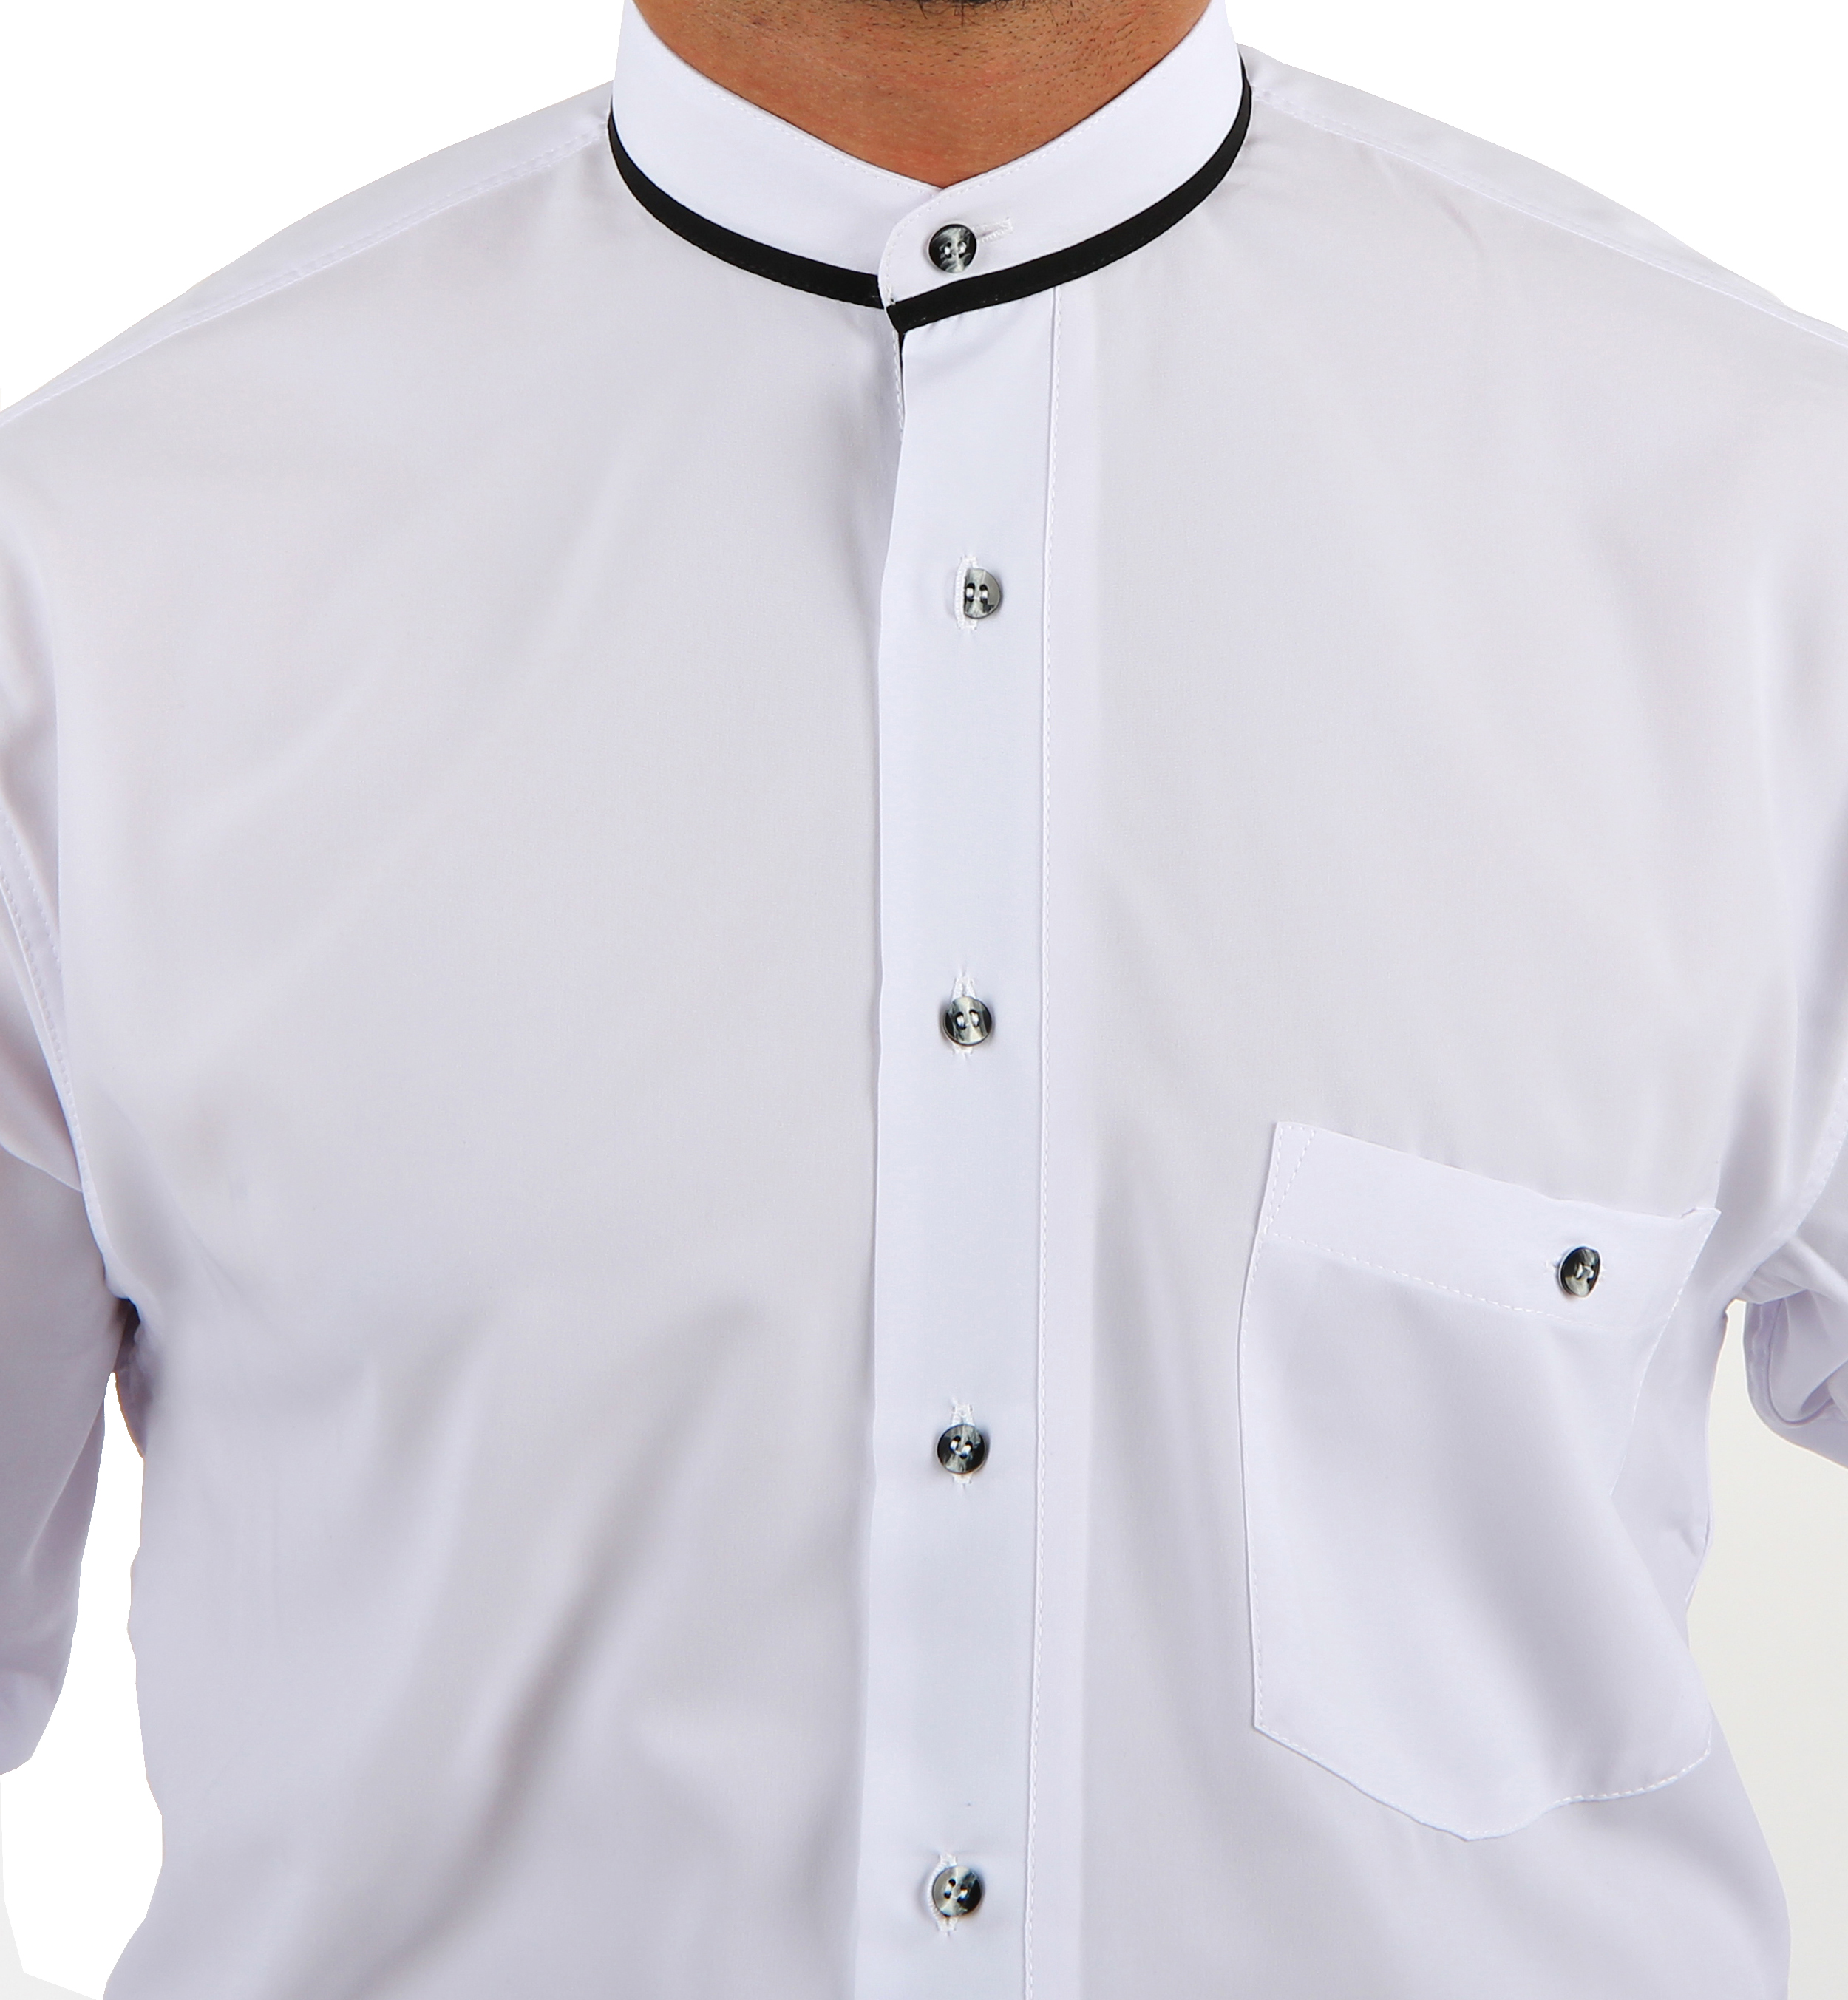 H.K. Mandel Kreative Mode für Männer - stand-up collar shirt, dress ... 846b6694b4